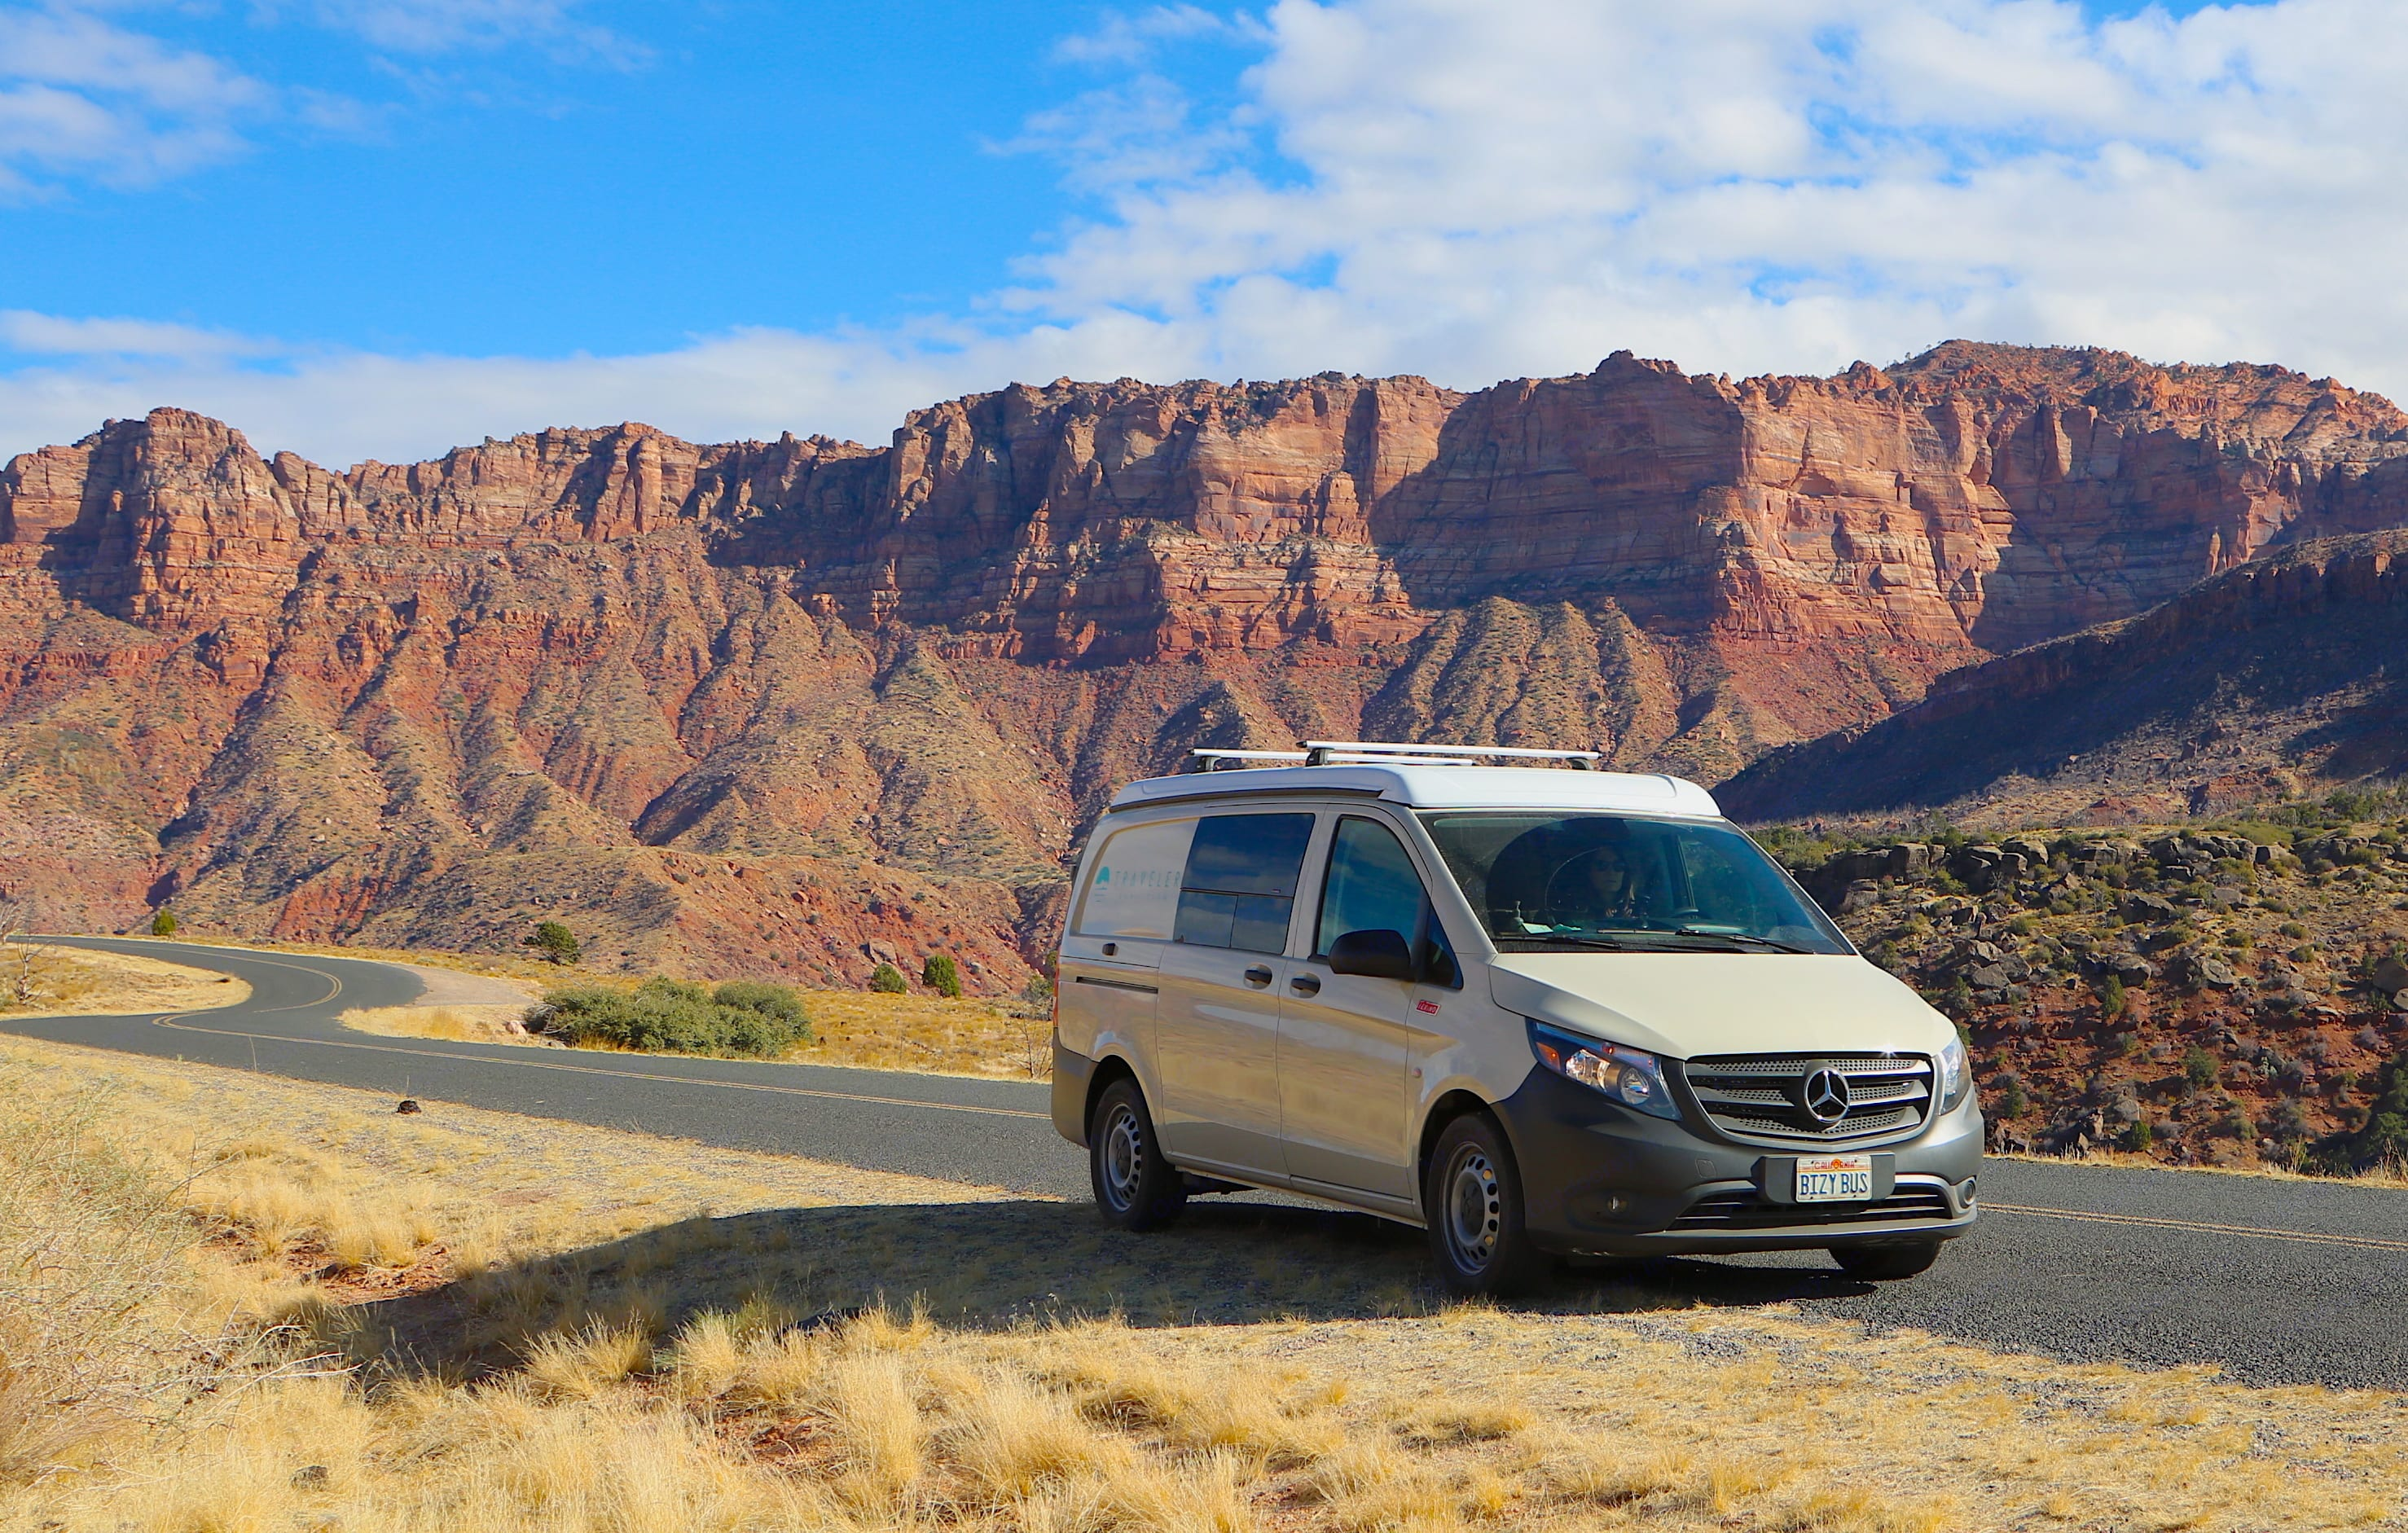 The Sandy Van drives like a dream and fits in around town. You'll be tempted to check out all of the vistas along your route.. Mercedes-Benz Metris Pop-Top 2020